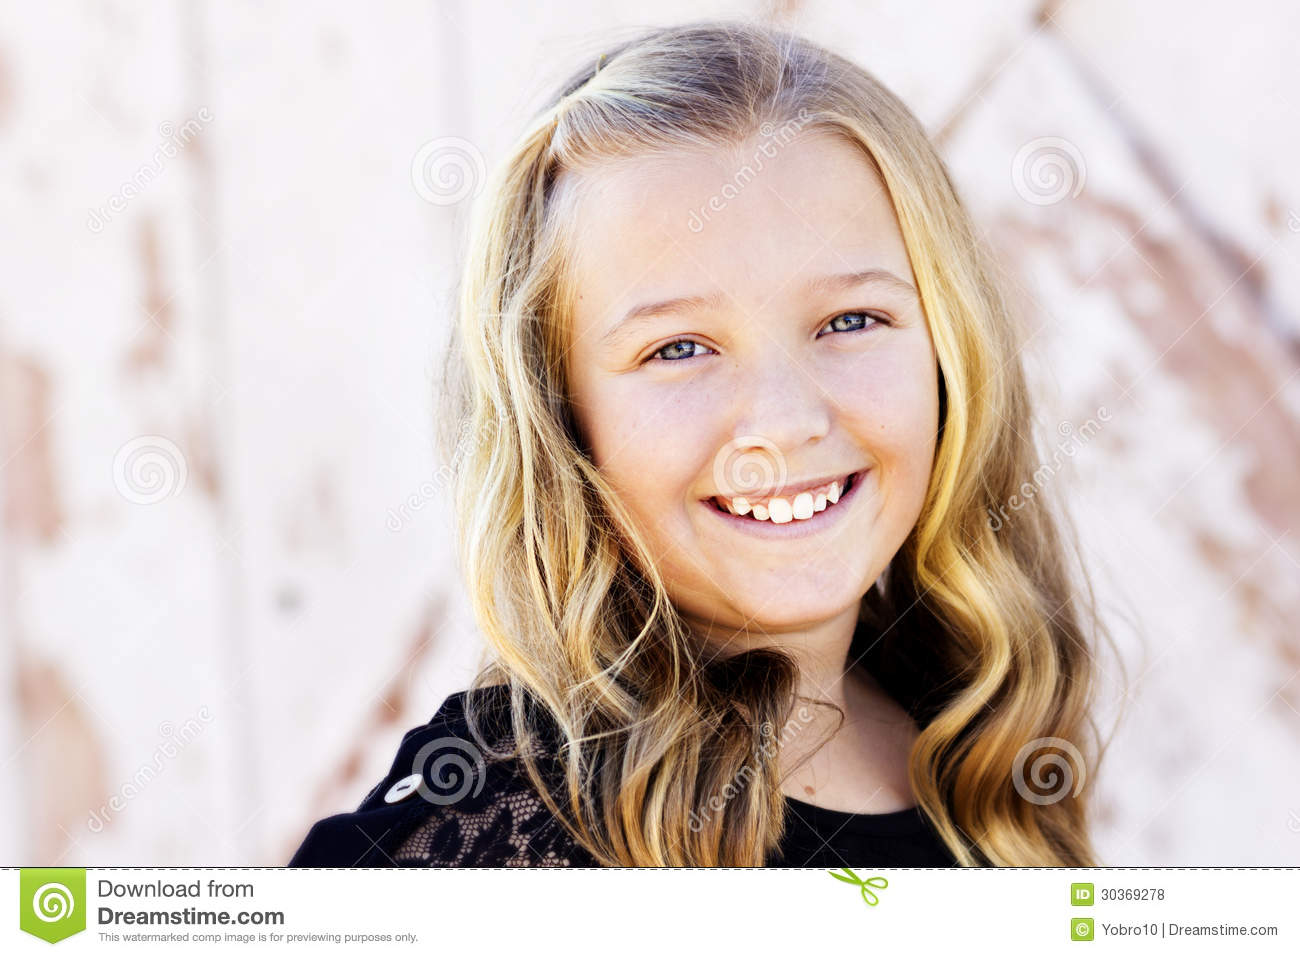 With Cute teen girl portrait